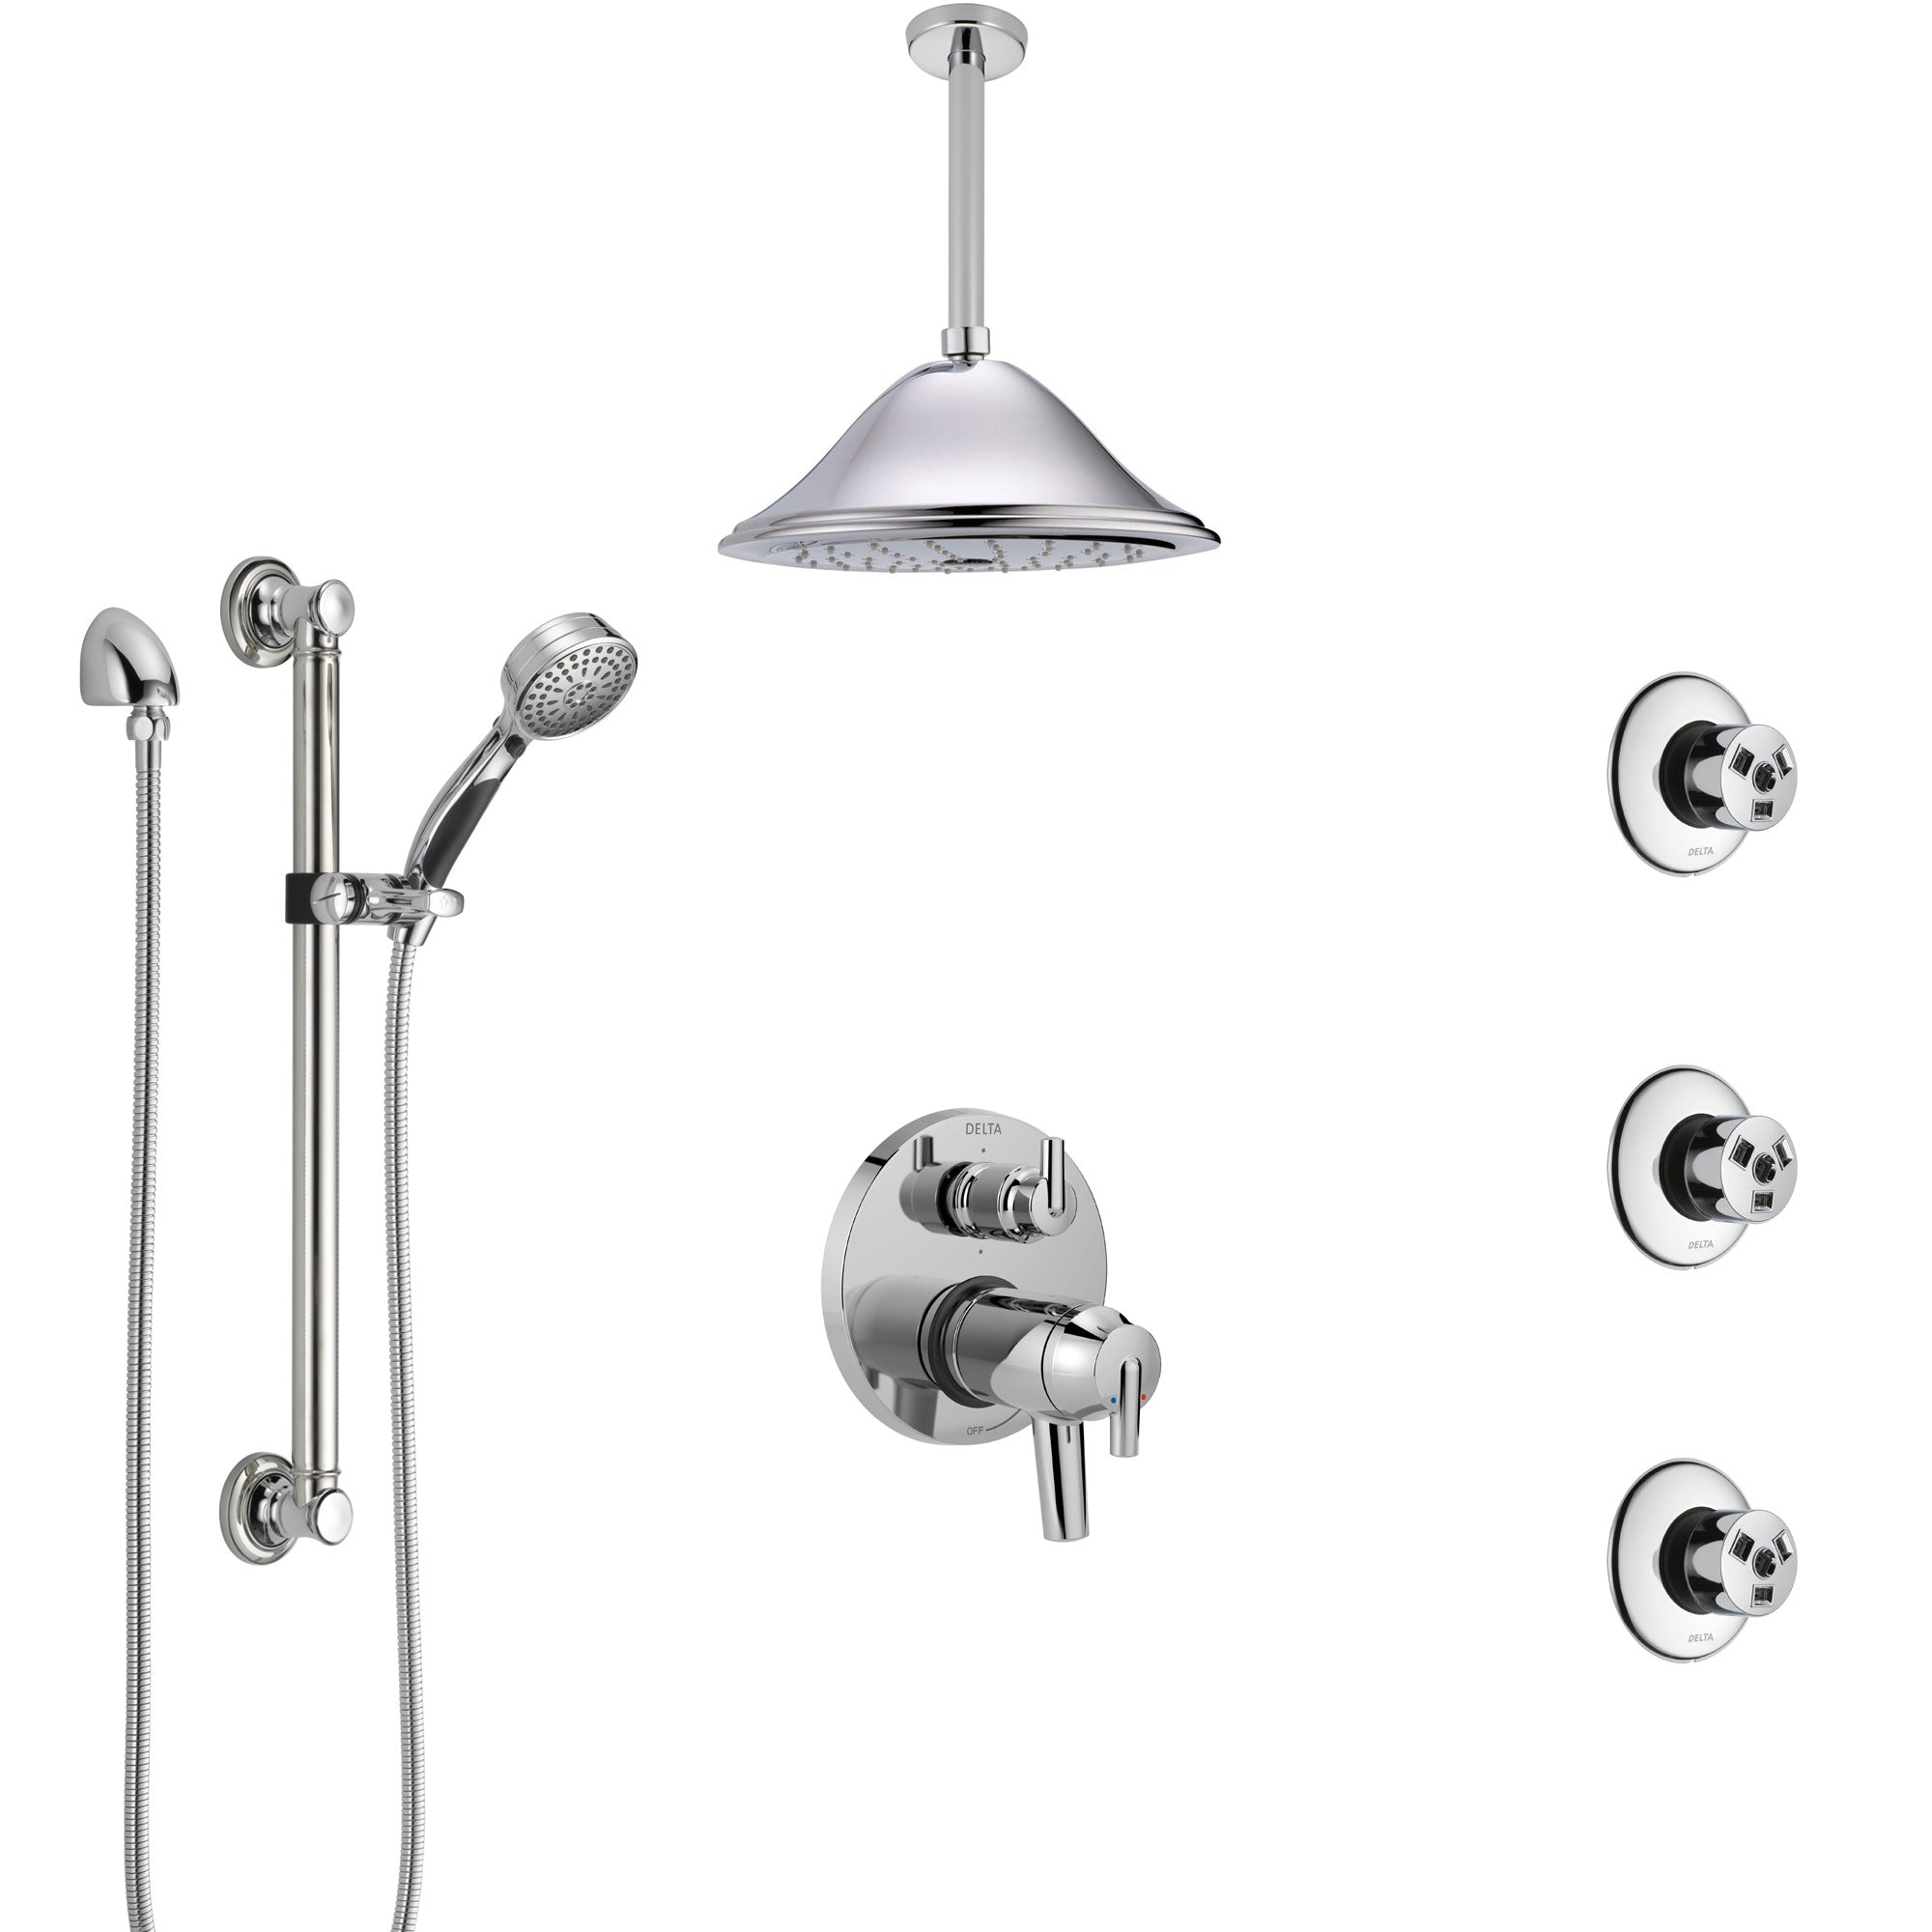 Delta Trinsic Chrome Dual Thermostatic Control Integrated Diverter Shower System, Ceiling Showerhead, 3 Body Sprays, and Grab Bar Hand Spray SS27T9593